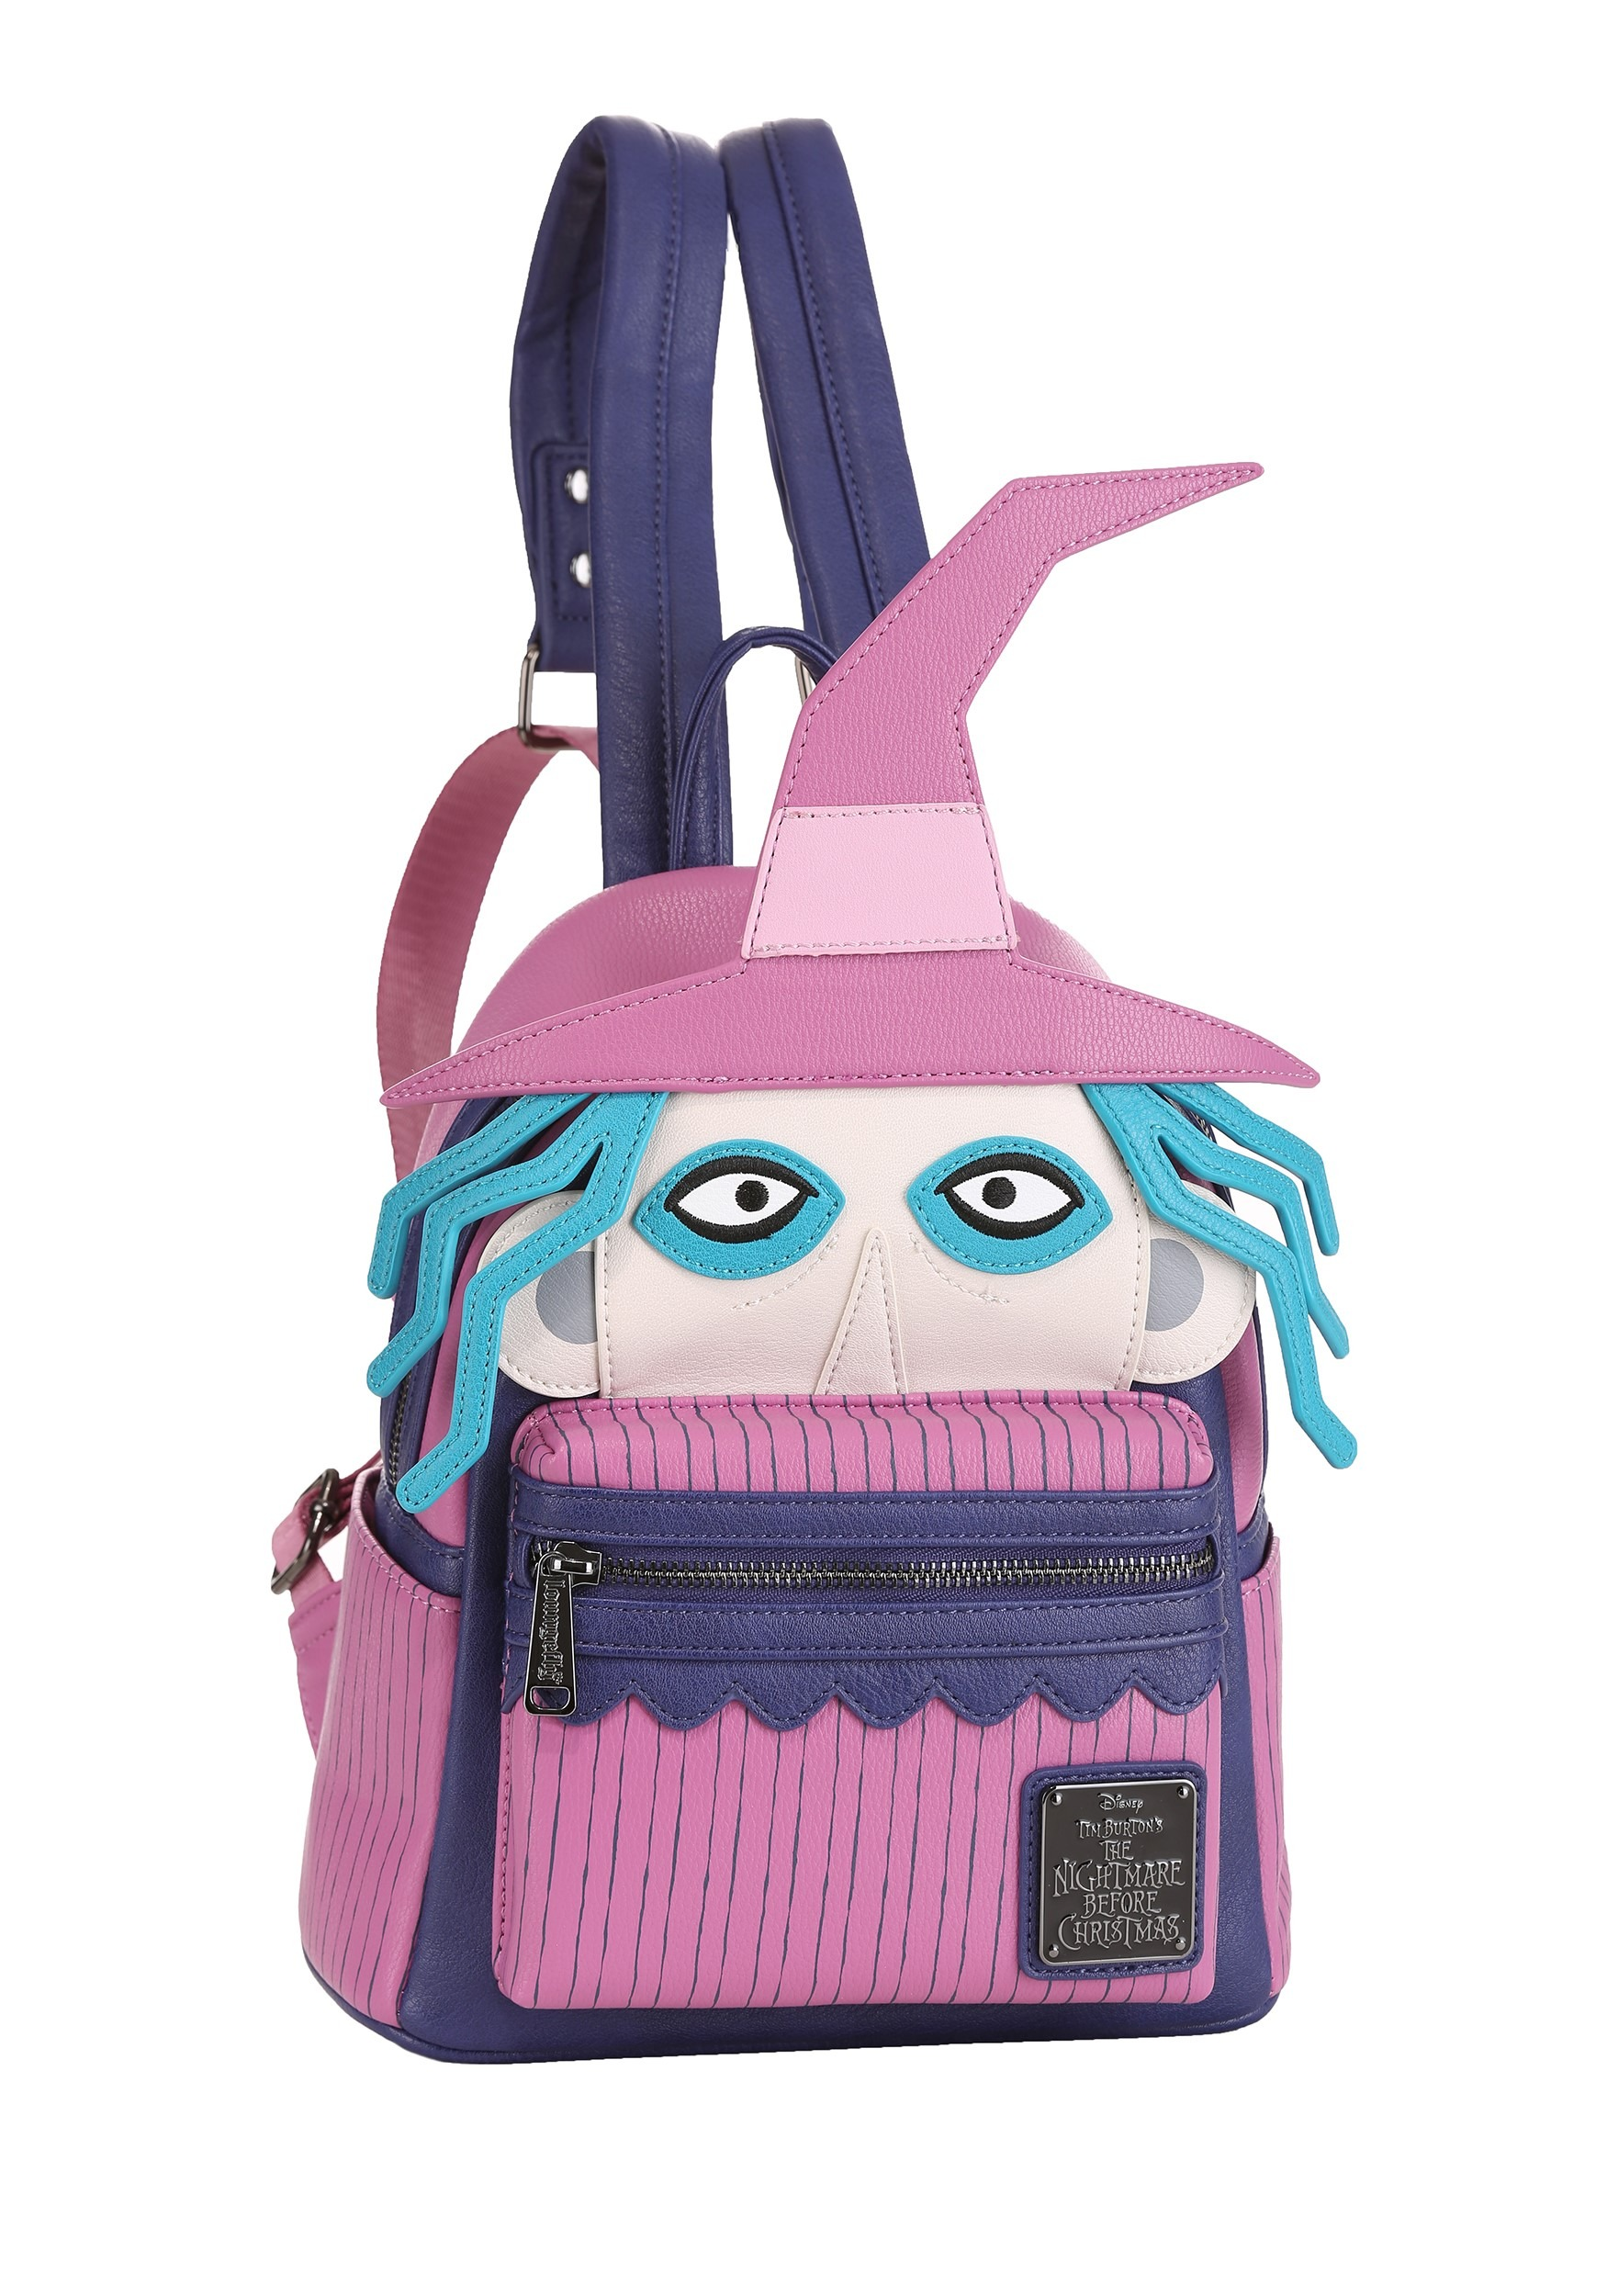 presenting best service good quality Loungefly Nightmare Before Christmas Shock Mini Backpack Faux Leather